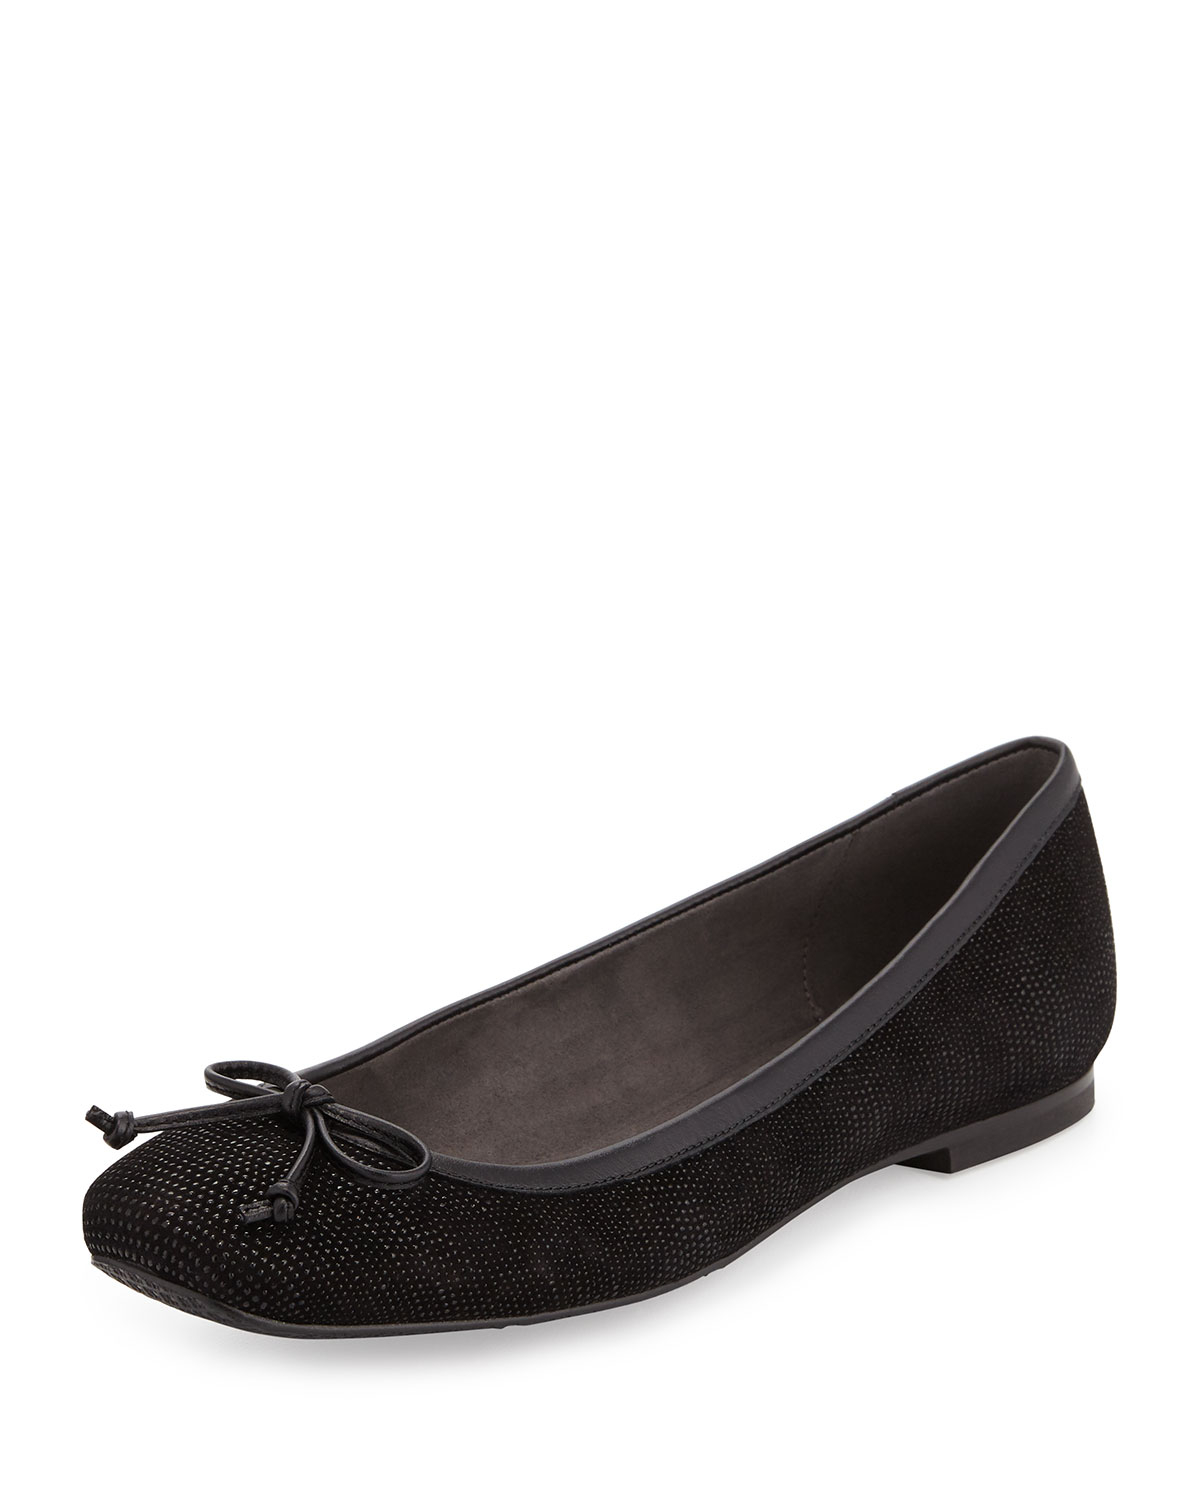 footlocker pictures sale online Stuart Weitzman Suede Embellished Ballet Flats amazon cheap online authentic online mGyG6Ko